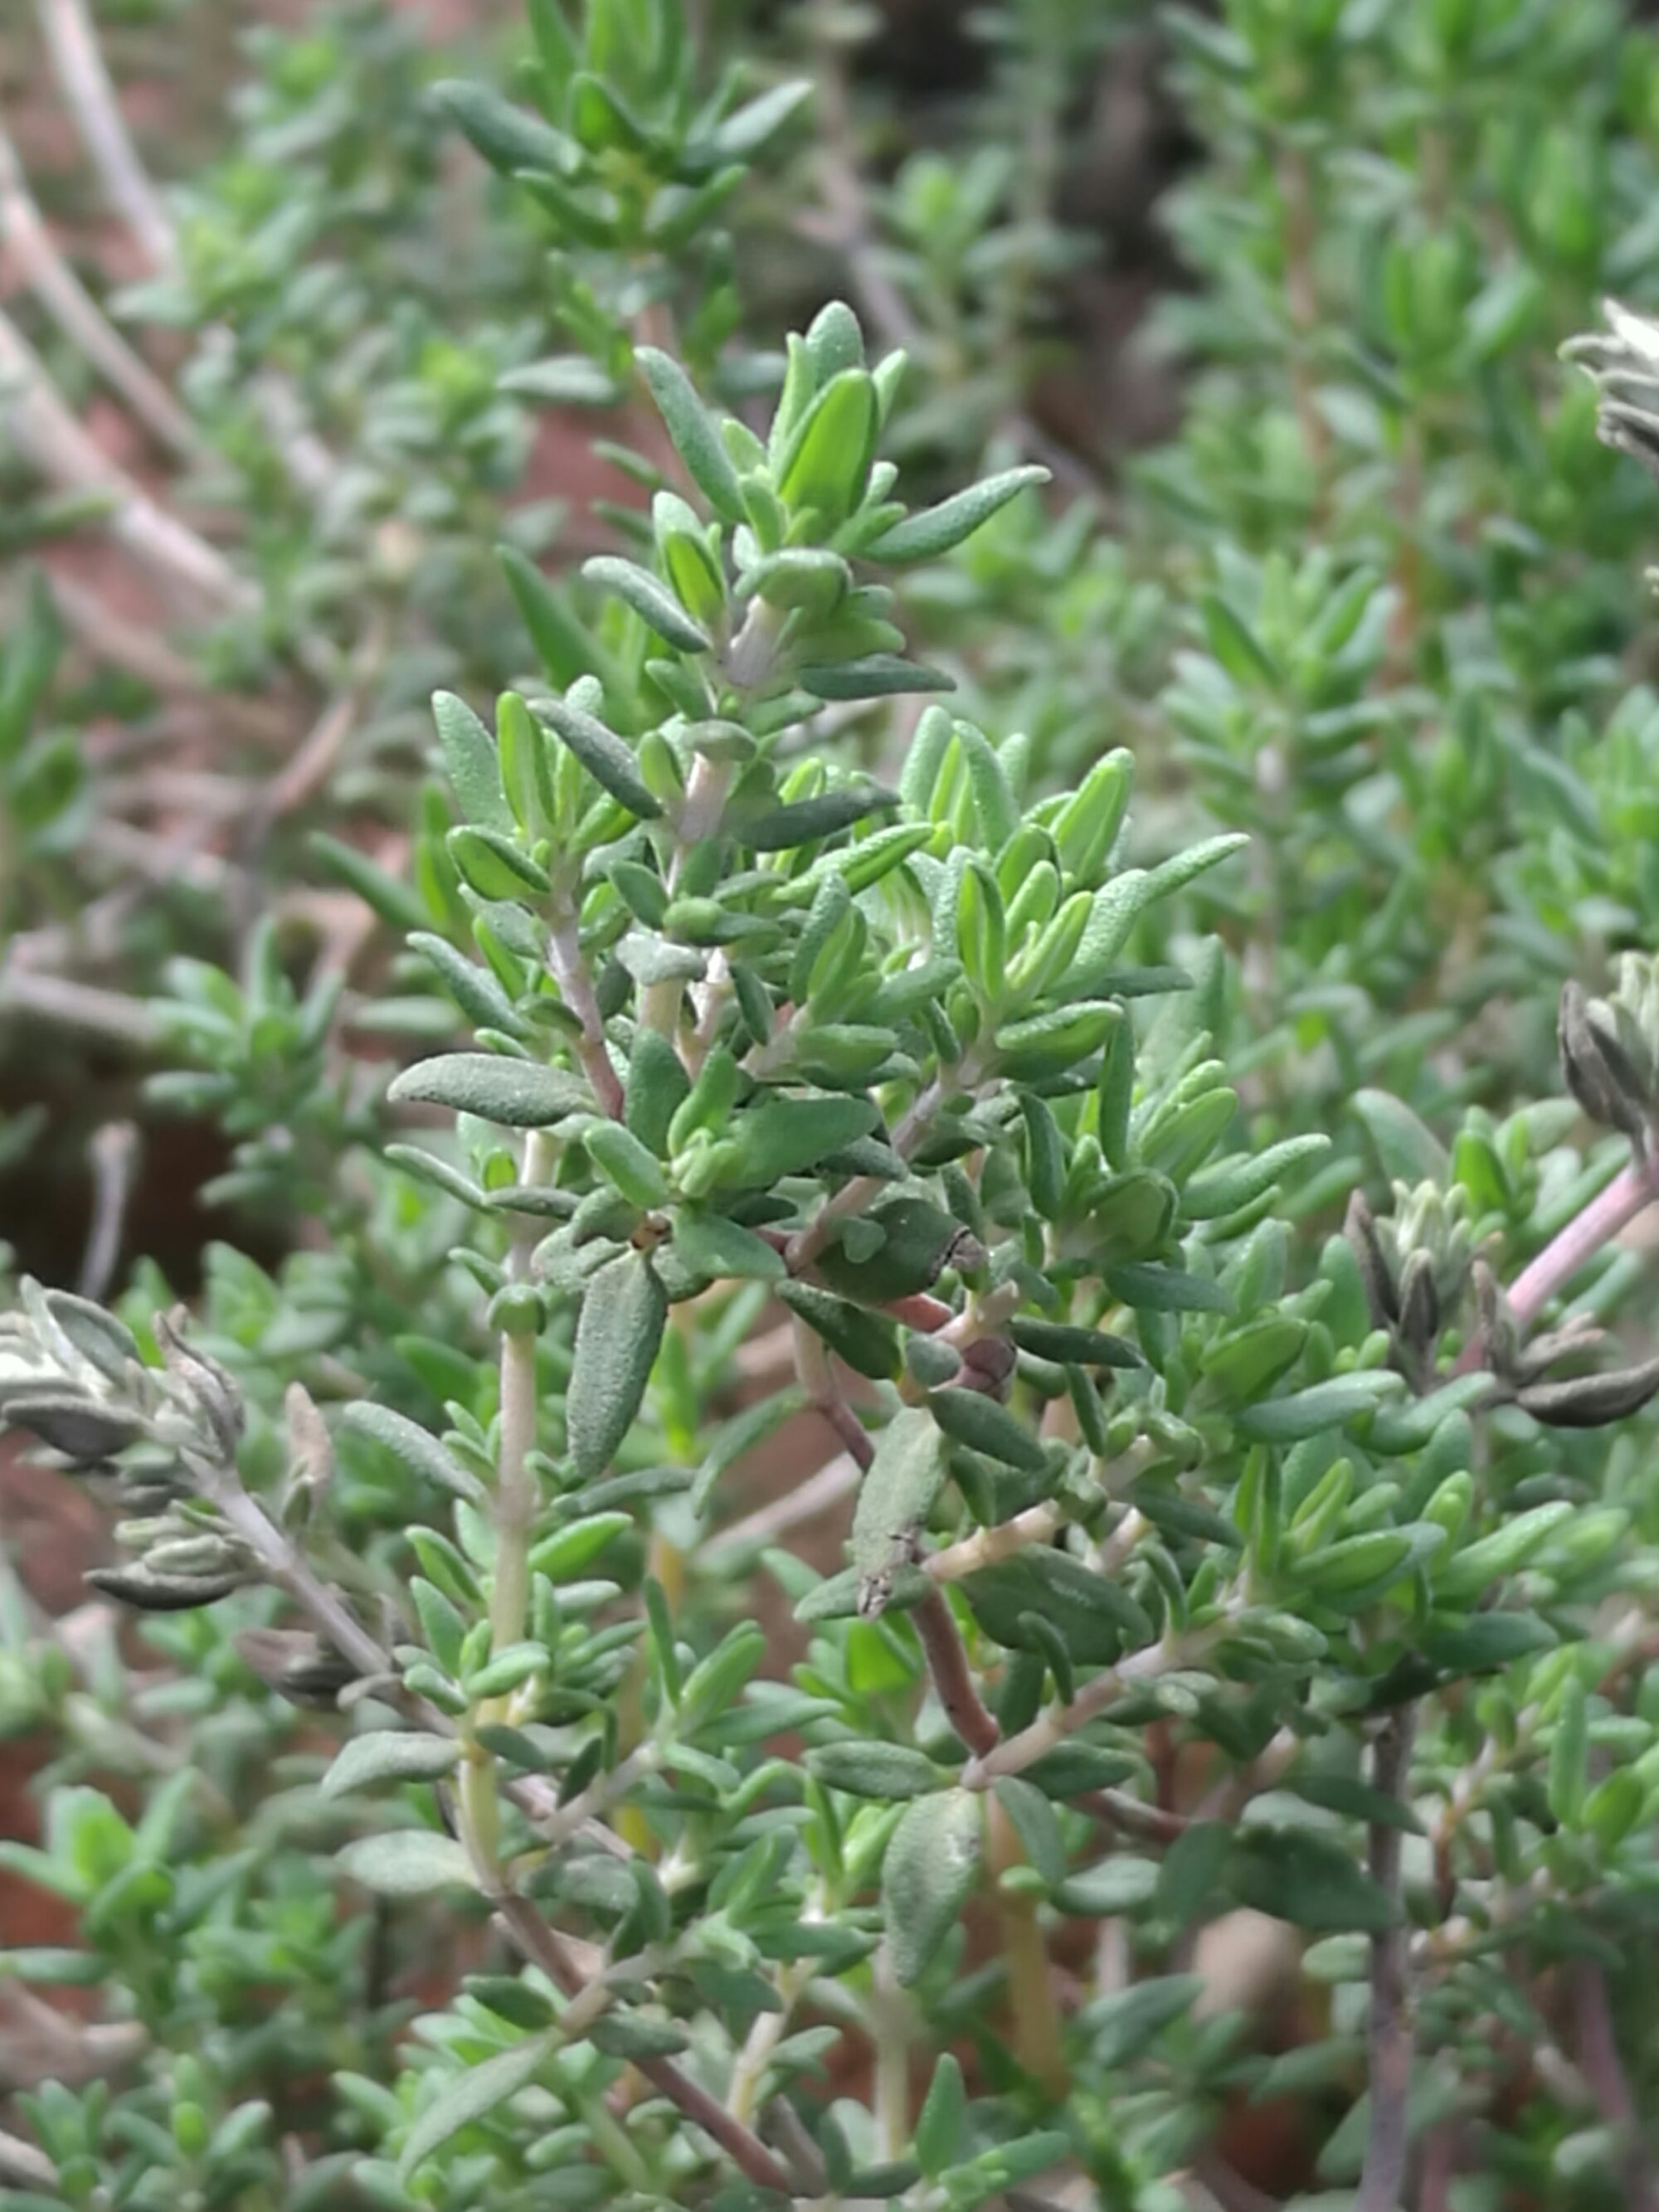 A dense tangle of Thyme leaves